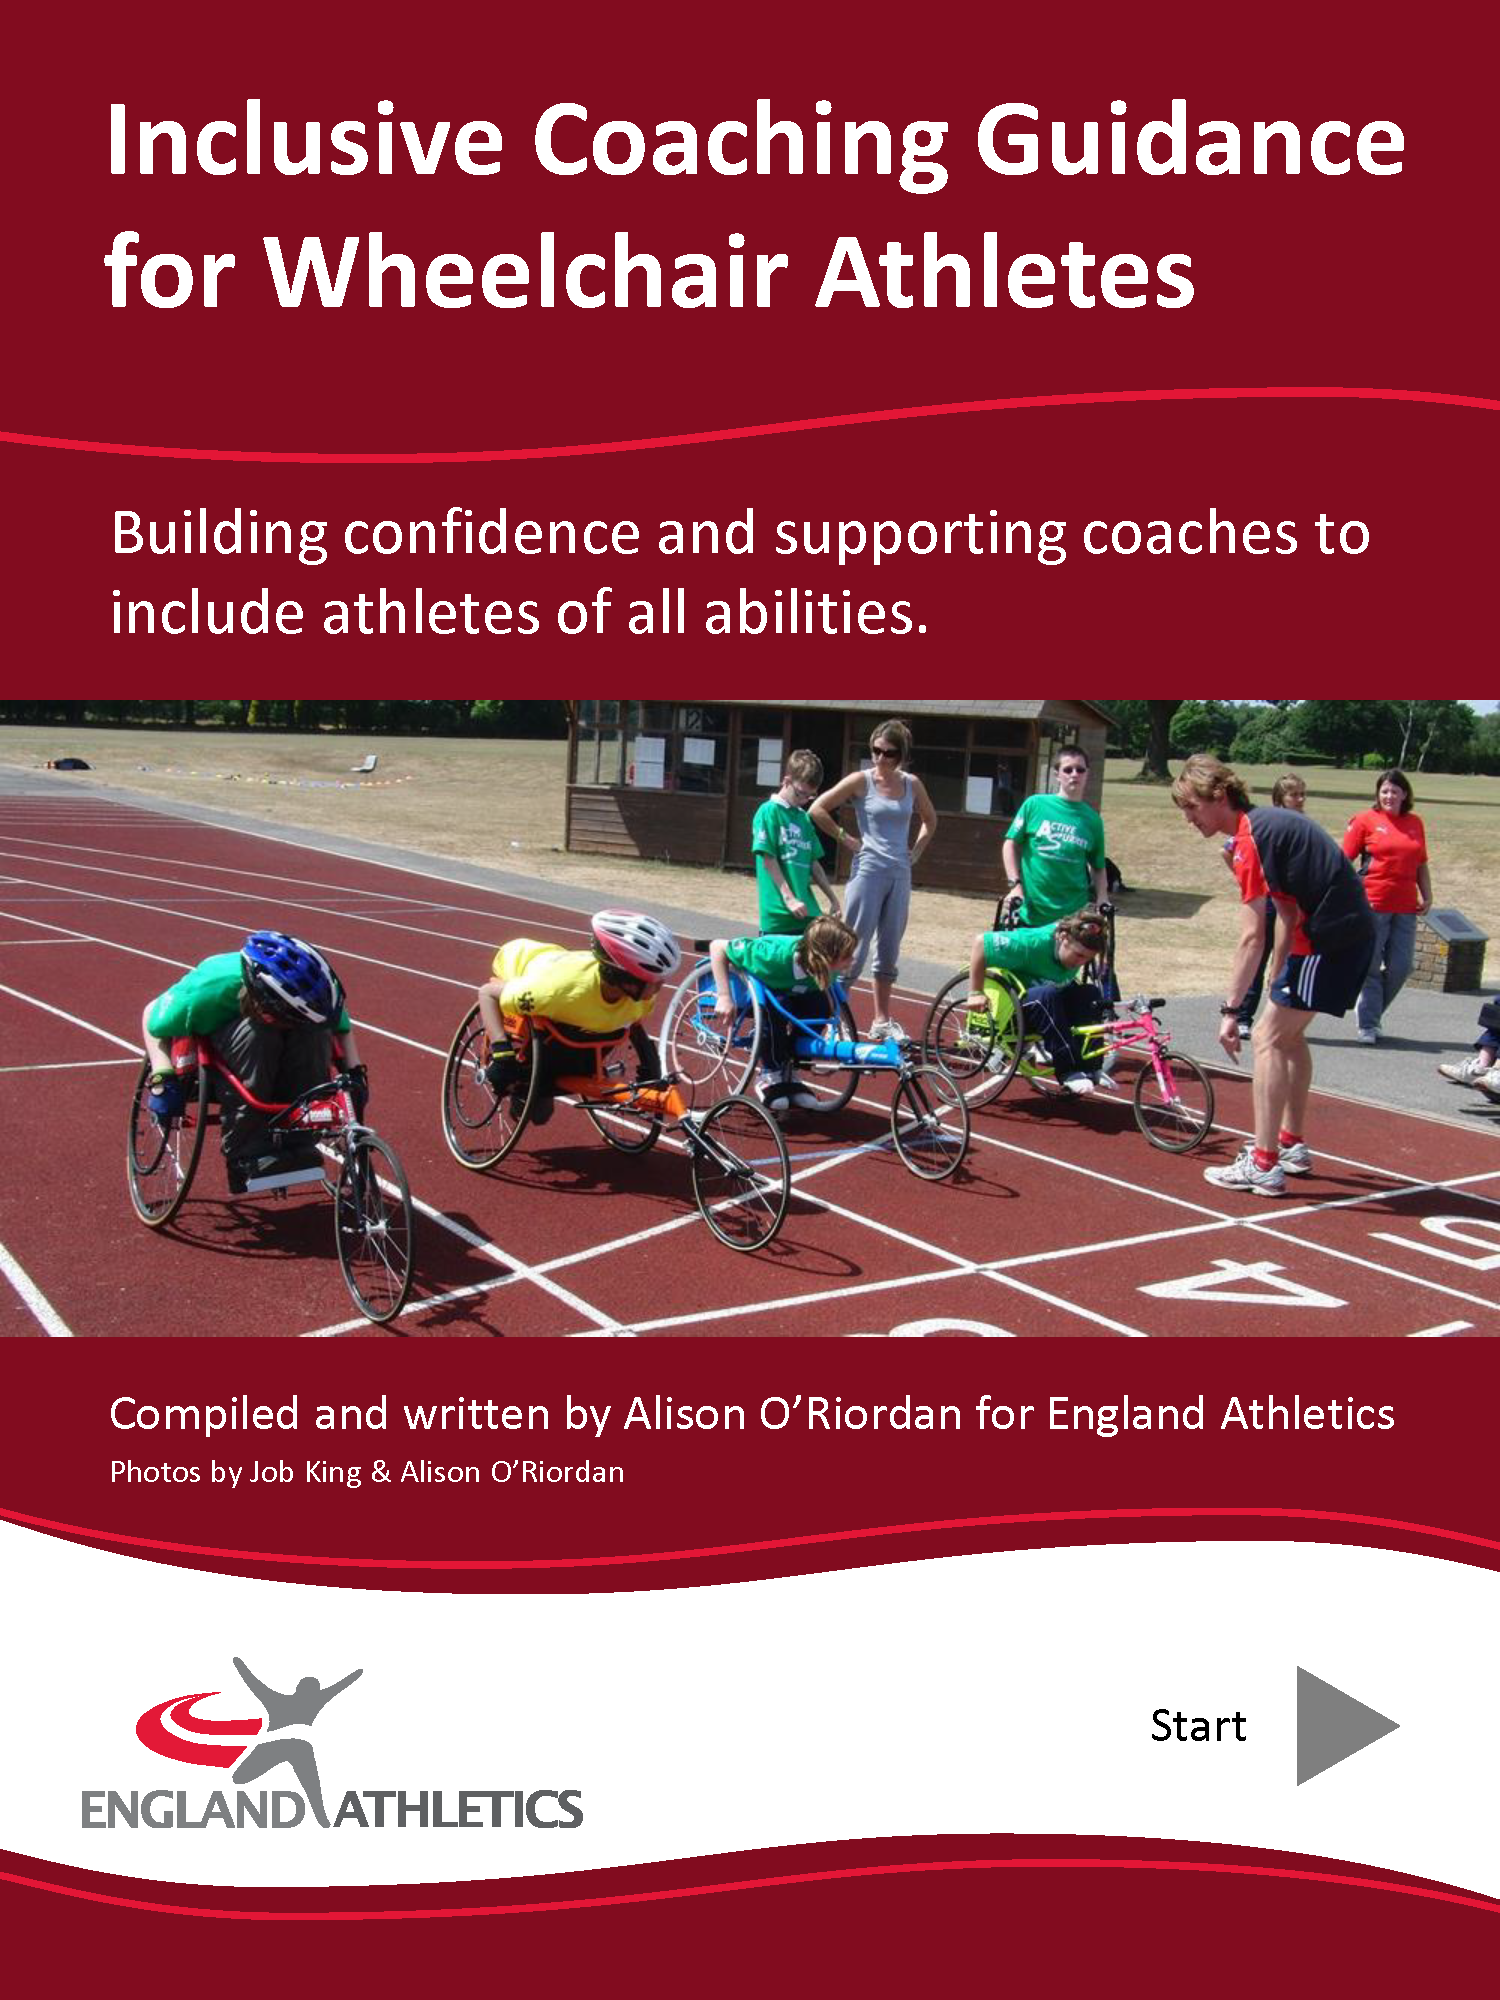 Inclusive-Coaching-Guidance-Wheelchair-Athletes-v11_Page_01.png